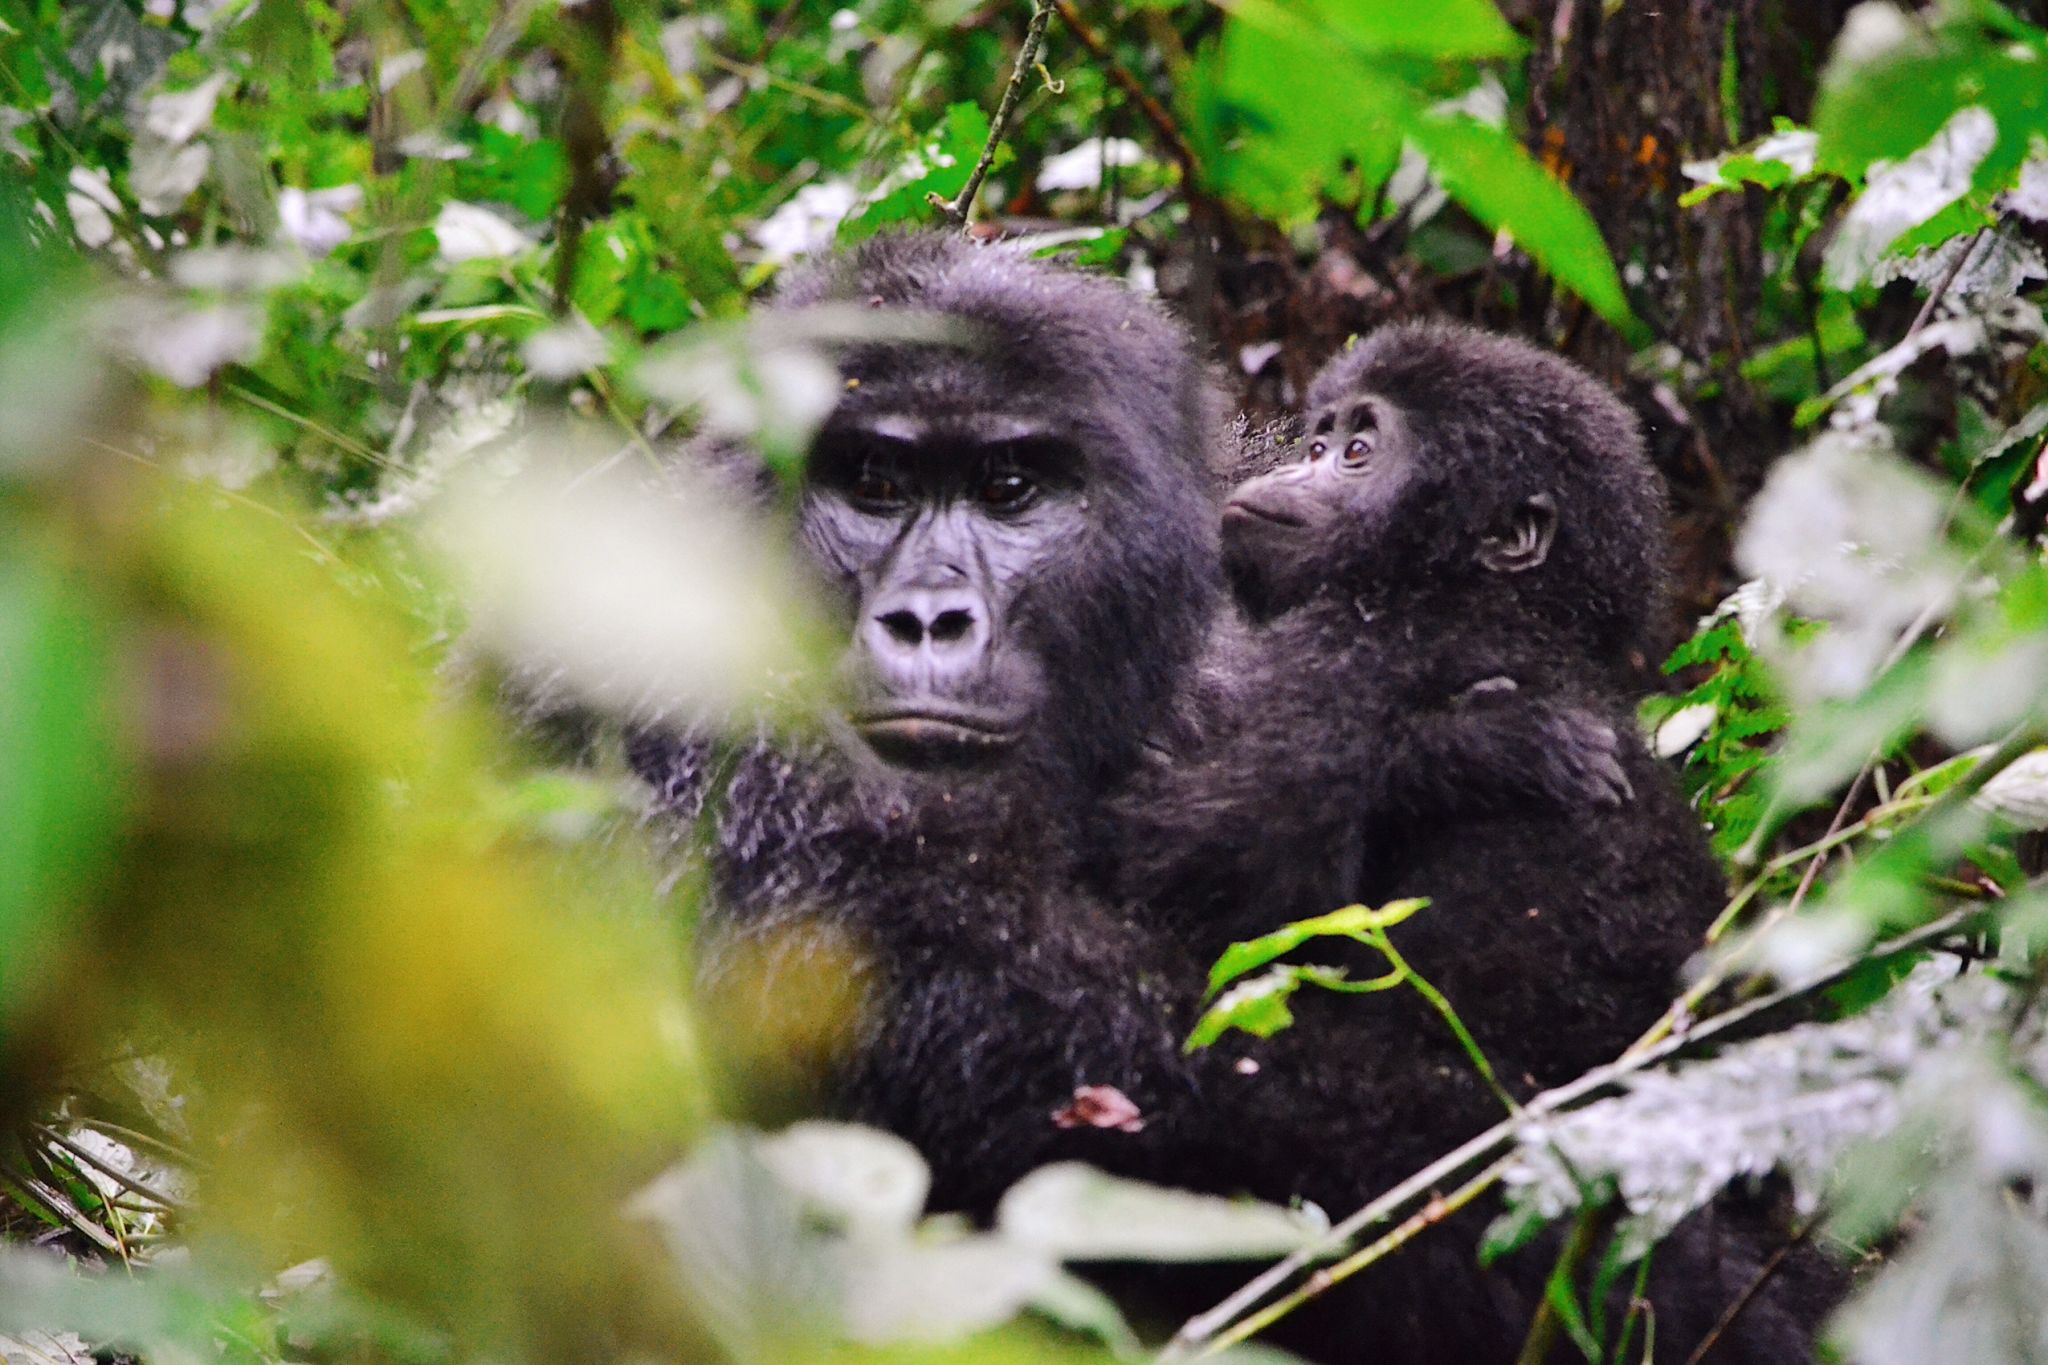 Picture of gorilla wildlife in Uganda